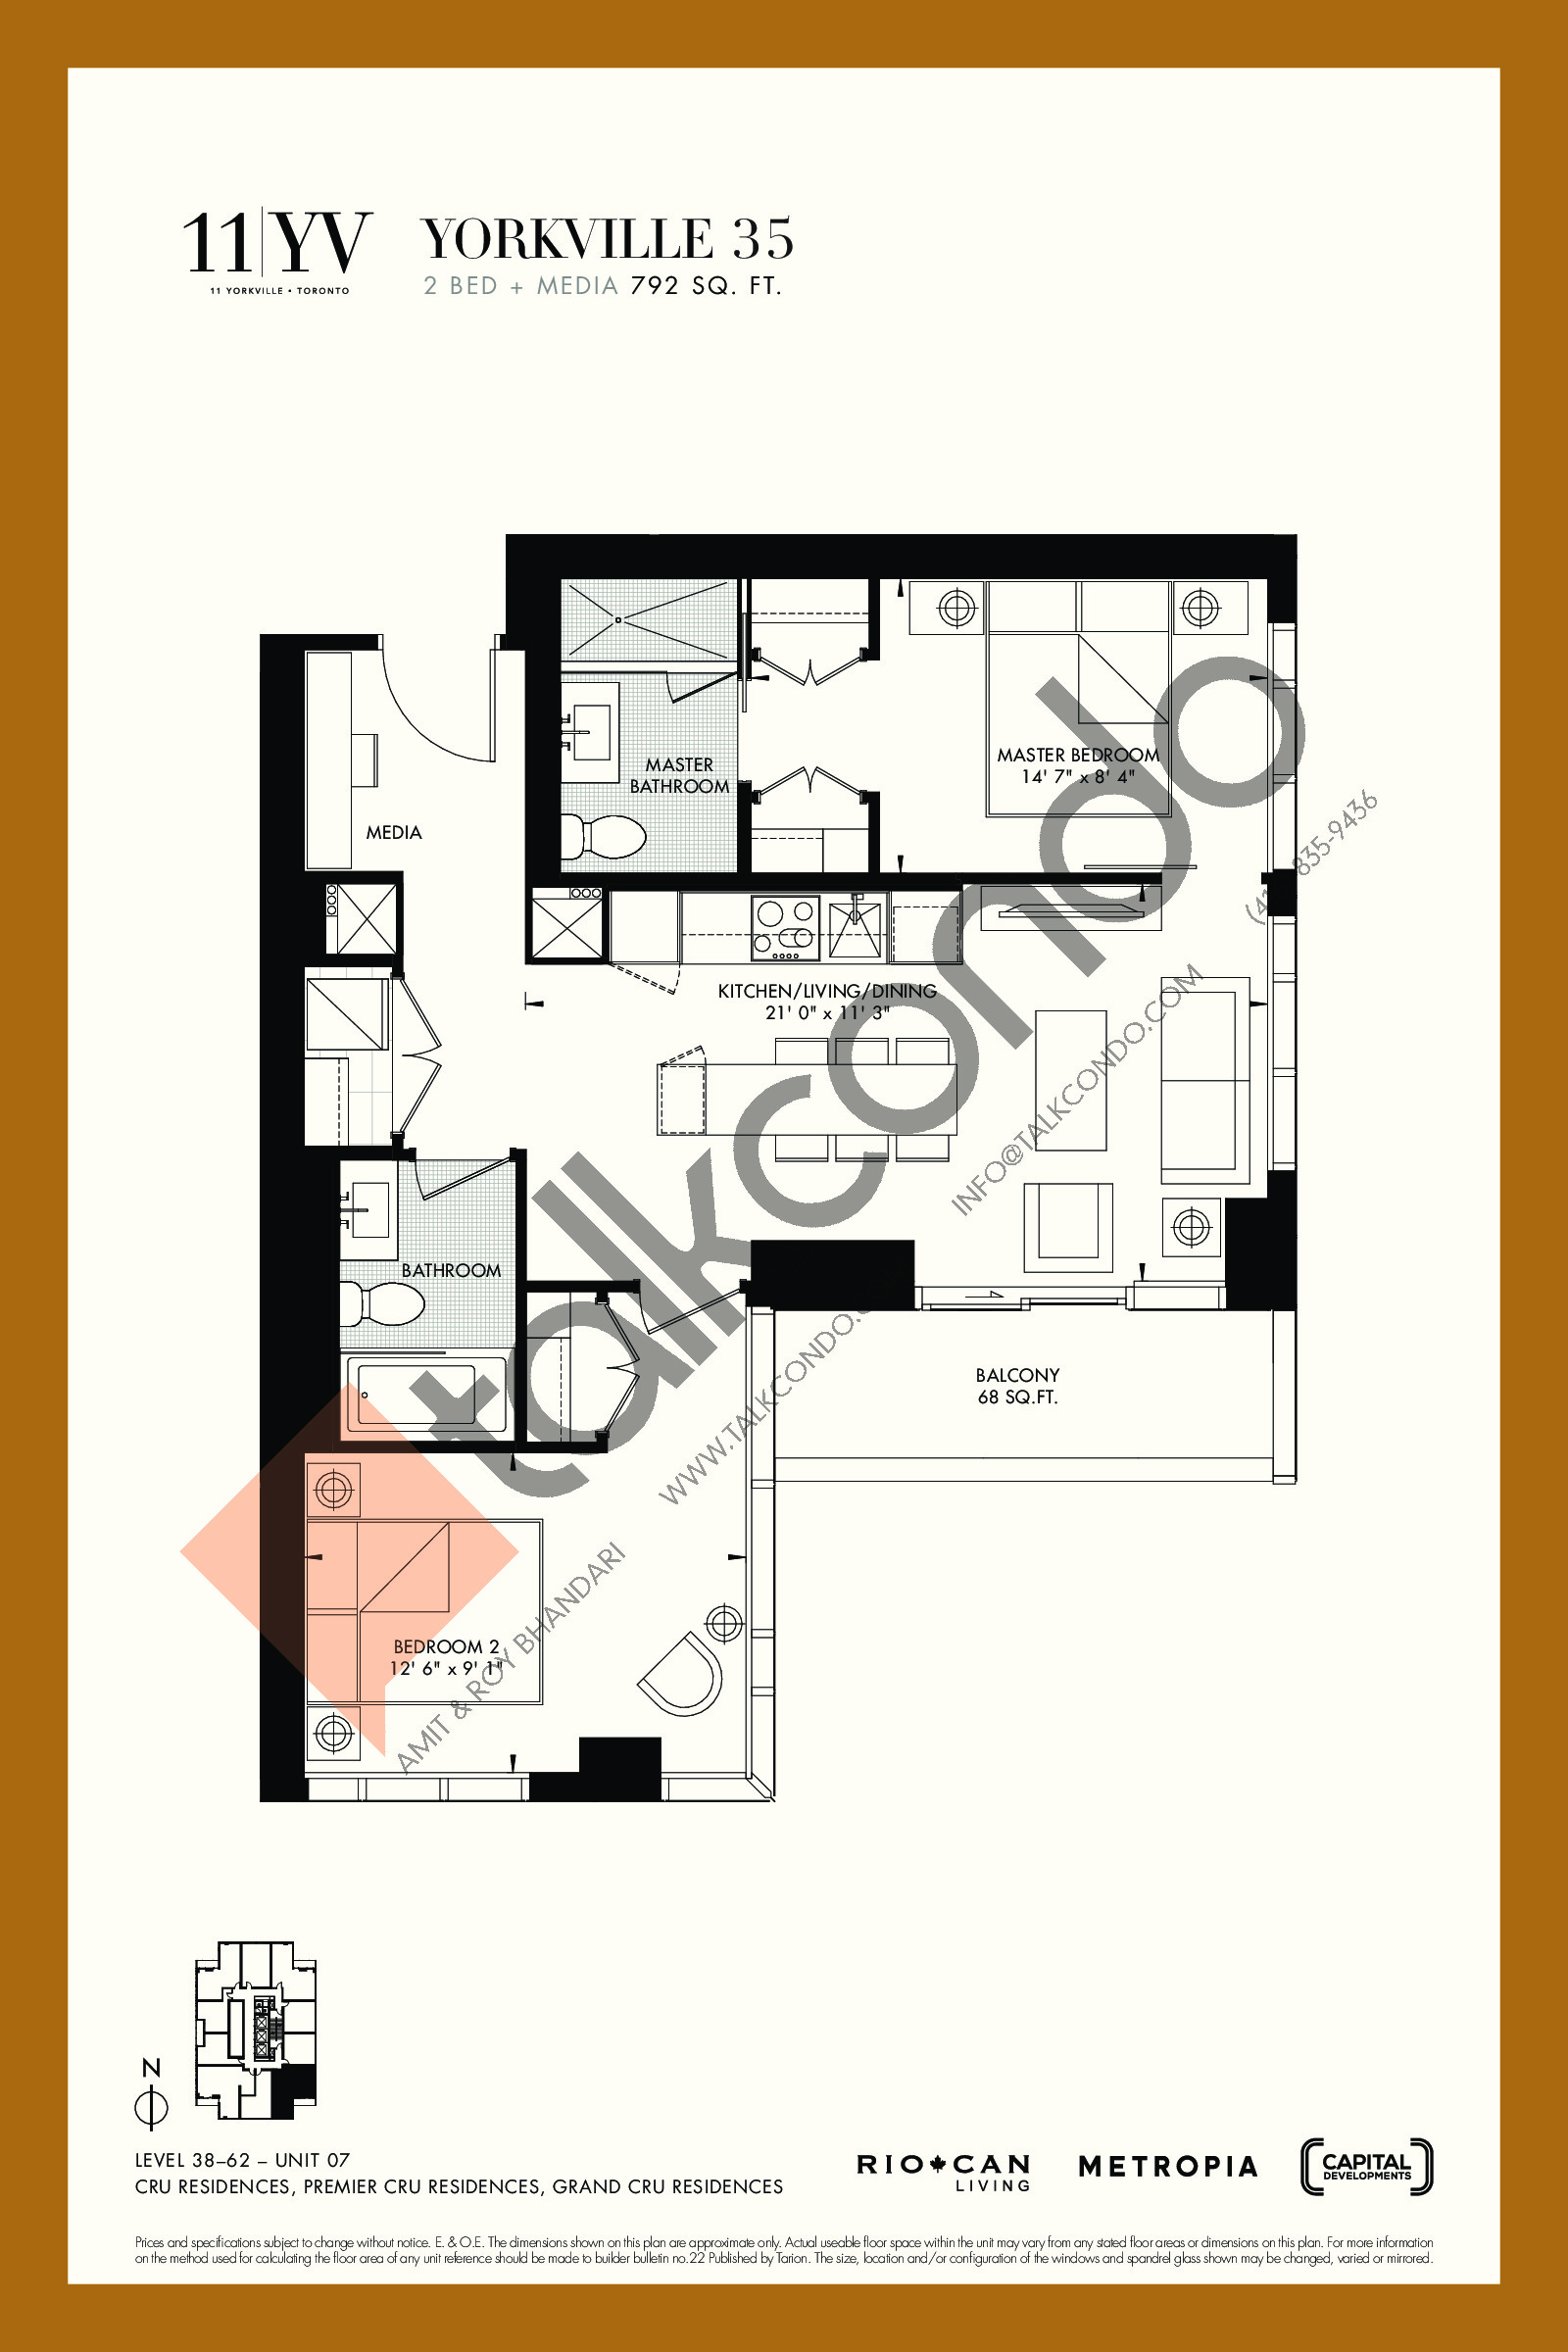 Yorkville 35 Floor Plan at 11YV Condos - 792 sq.ft